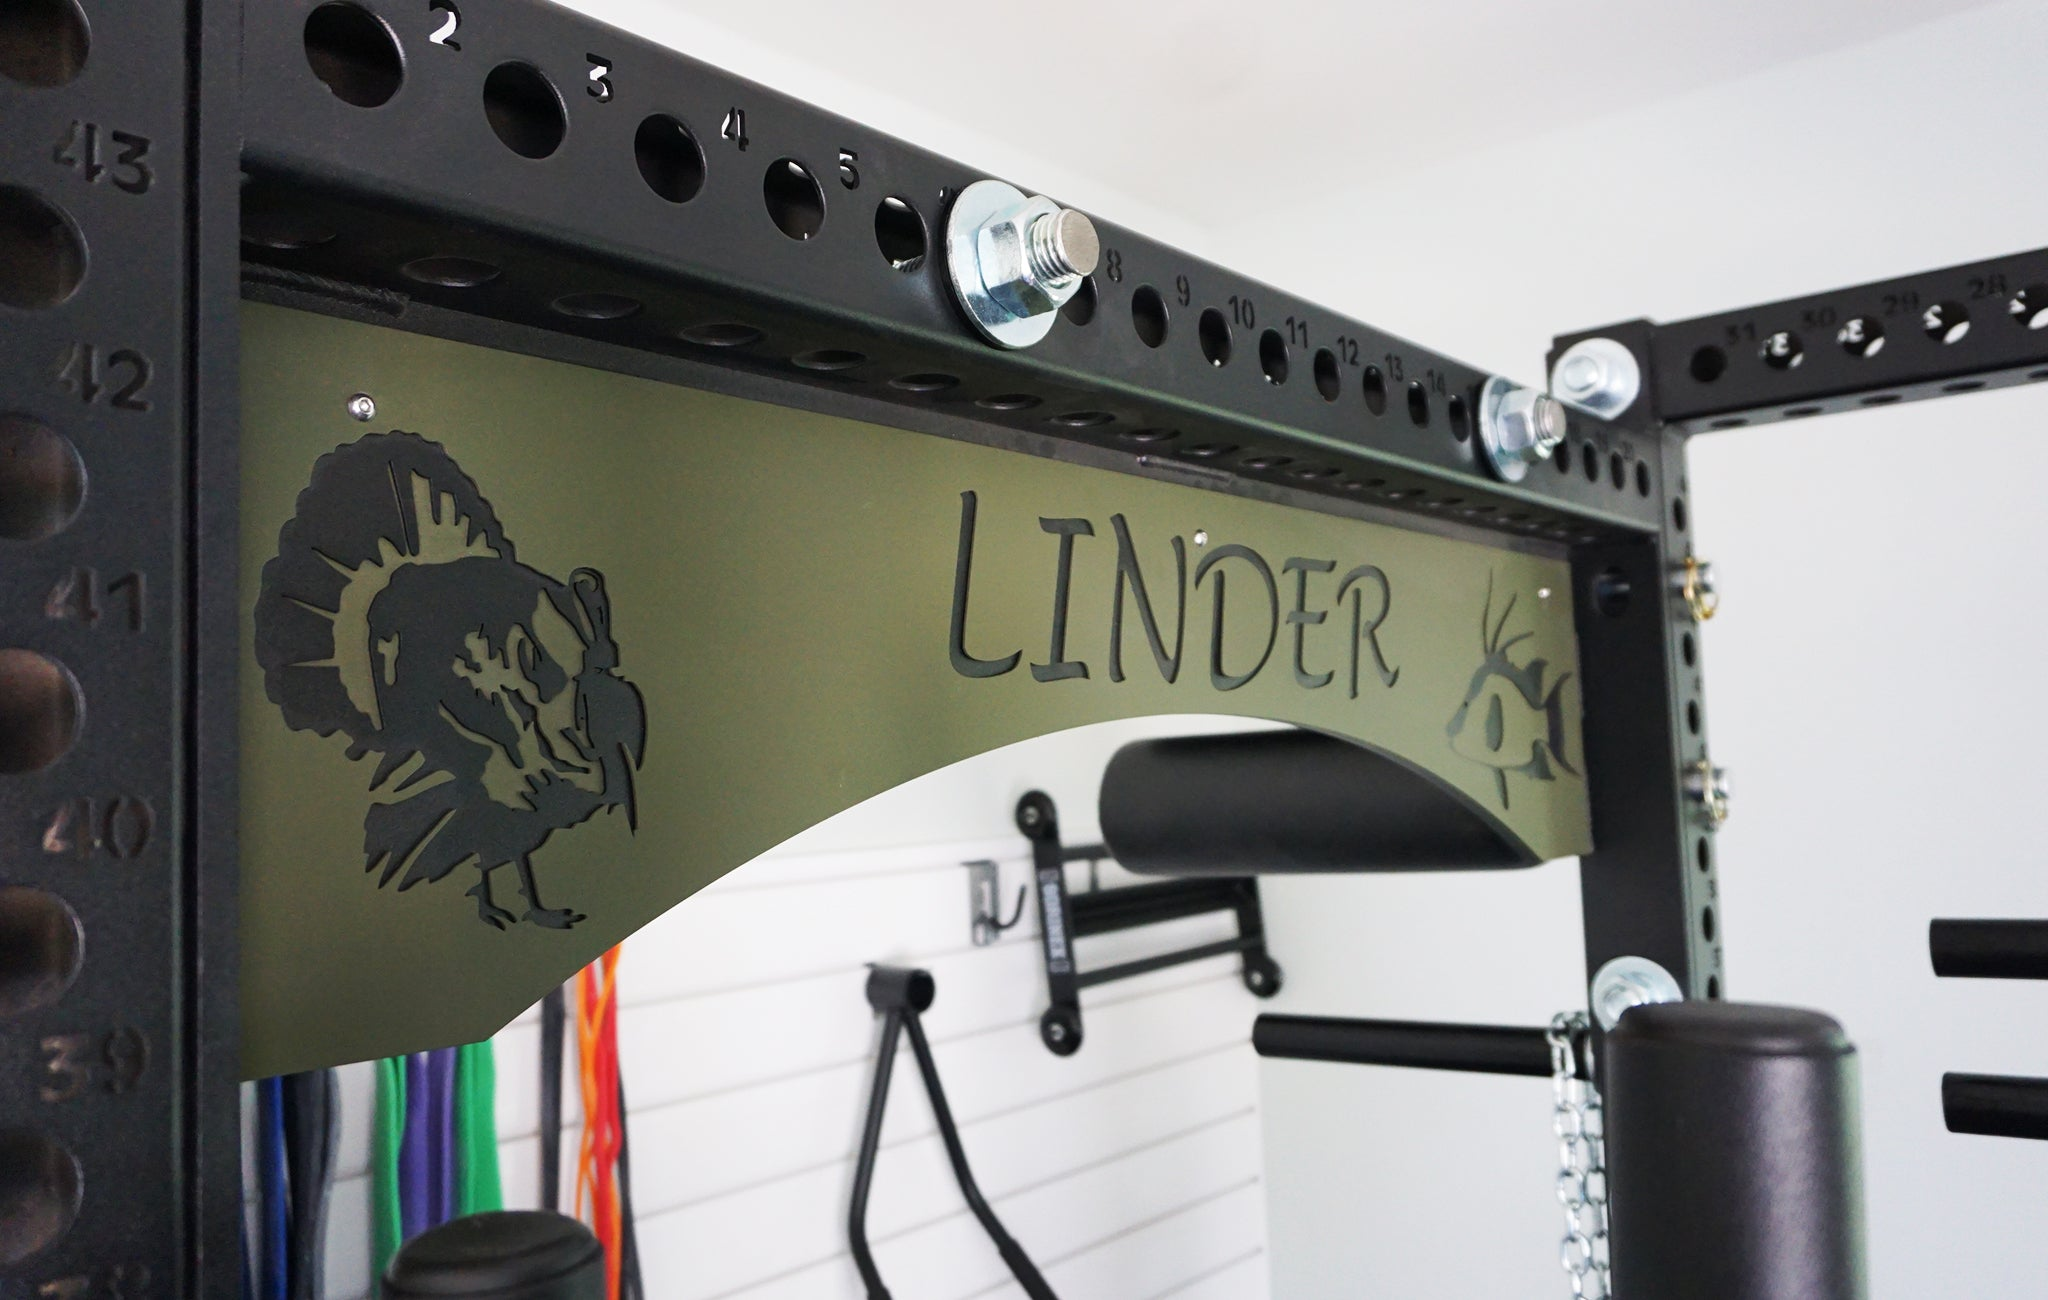 Brandon Linder Garage Gym